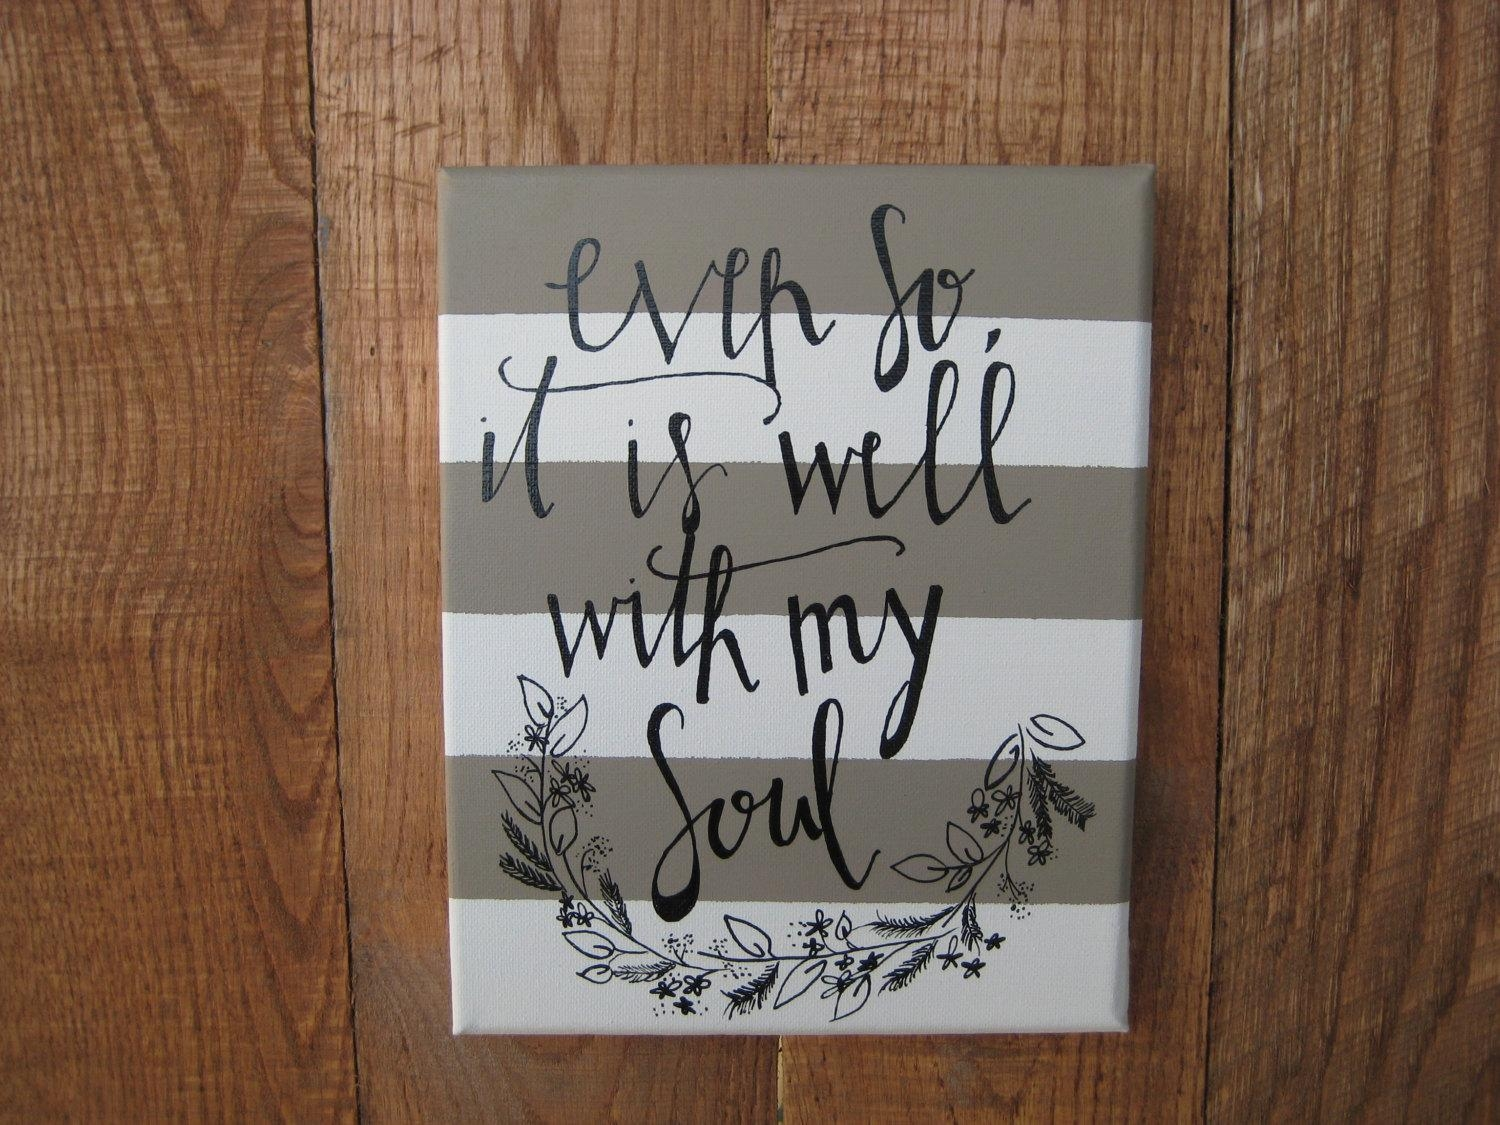 Wall Art Designs: Christian Canvas Wall Art On Your Home And With Regard To Christian Wall Art Canvas (View 2 of 20)